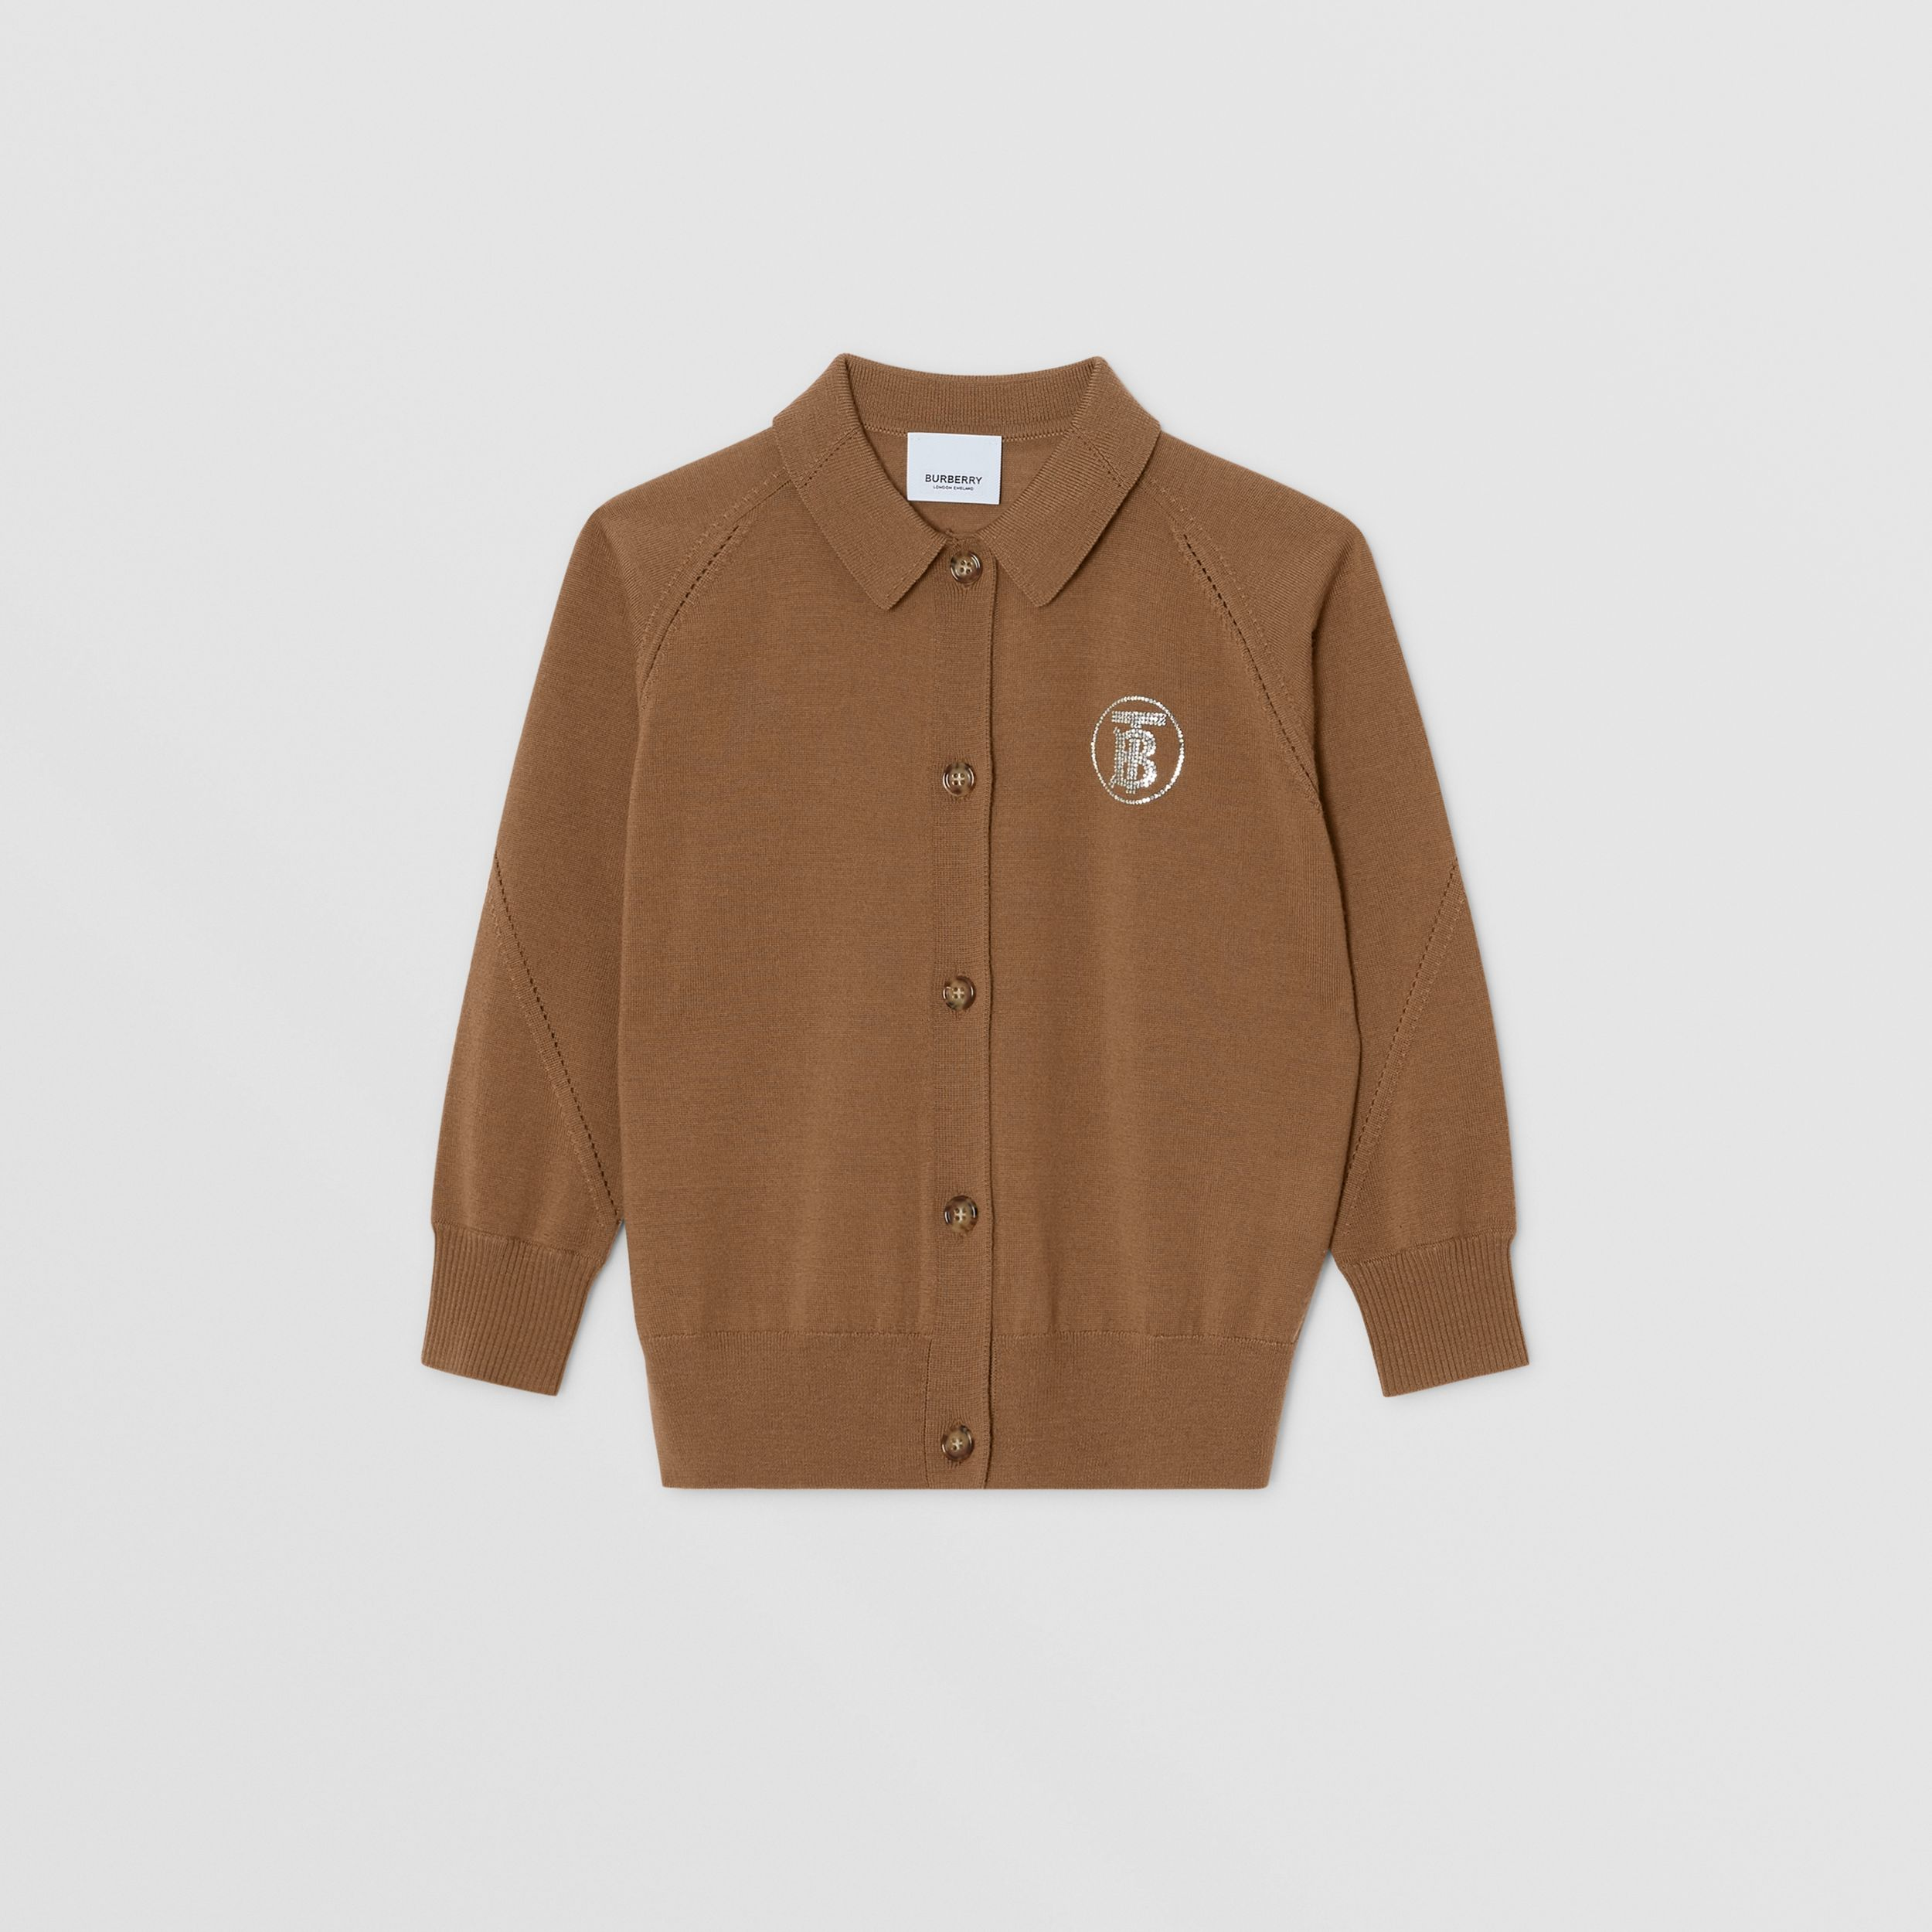 Crystal Monogram Motif Merino Wool Cardigan in Oak Brown | Burberry Hong Kong S.A.R. - 1